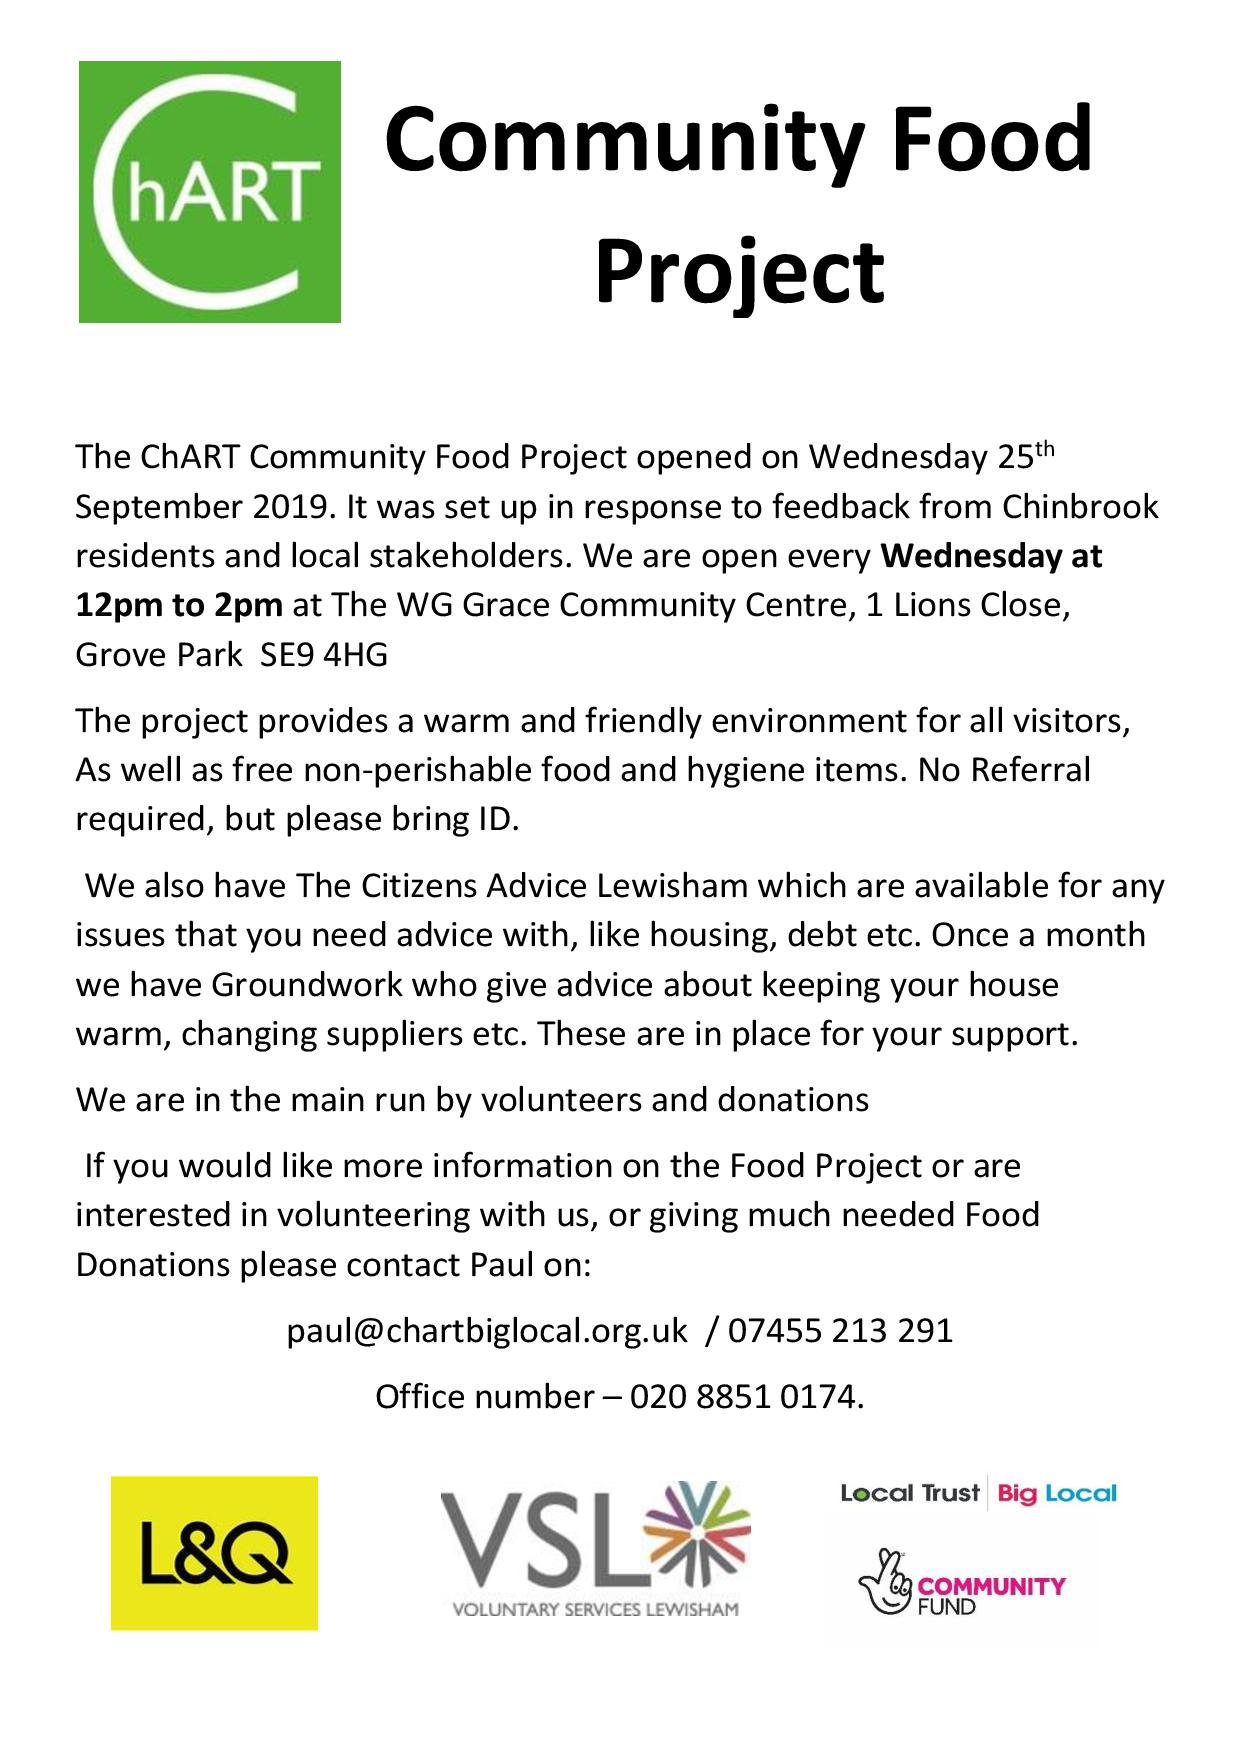 Food Project Flyer advertising Food Project every wednesday 12pm  - 2pm WG Grace Community Centre